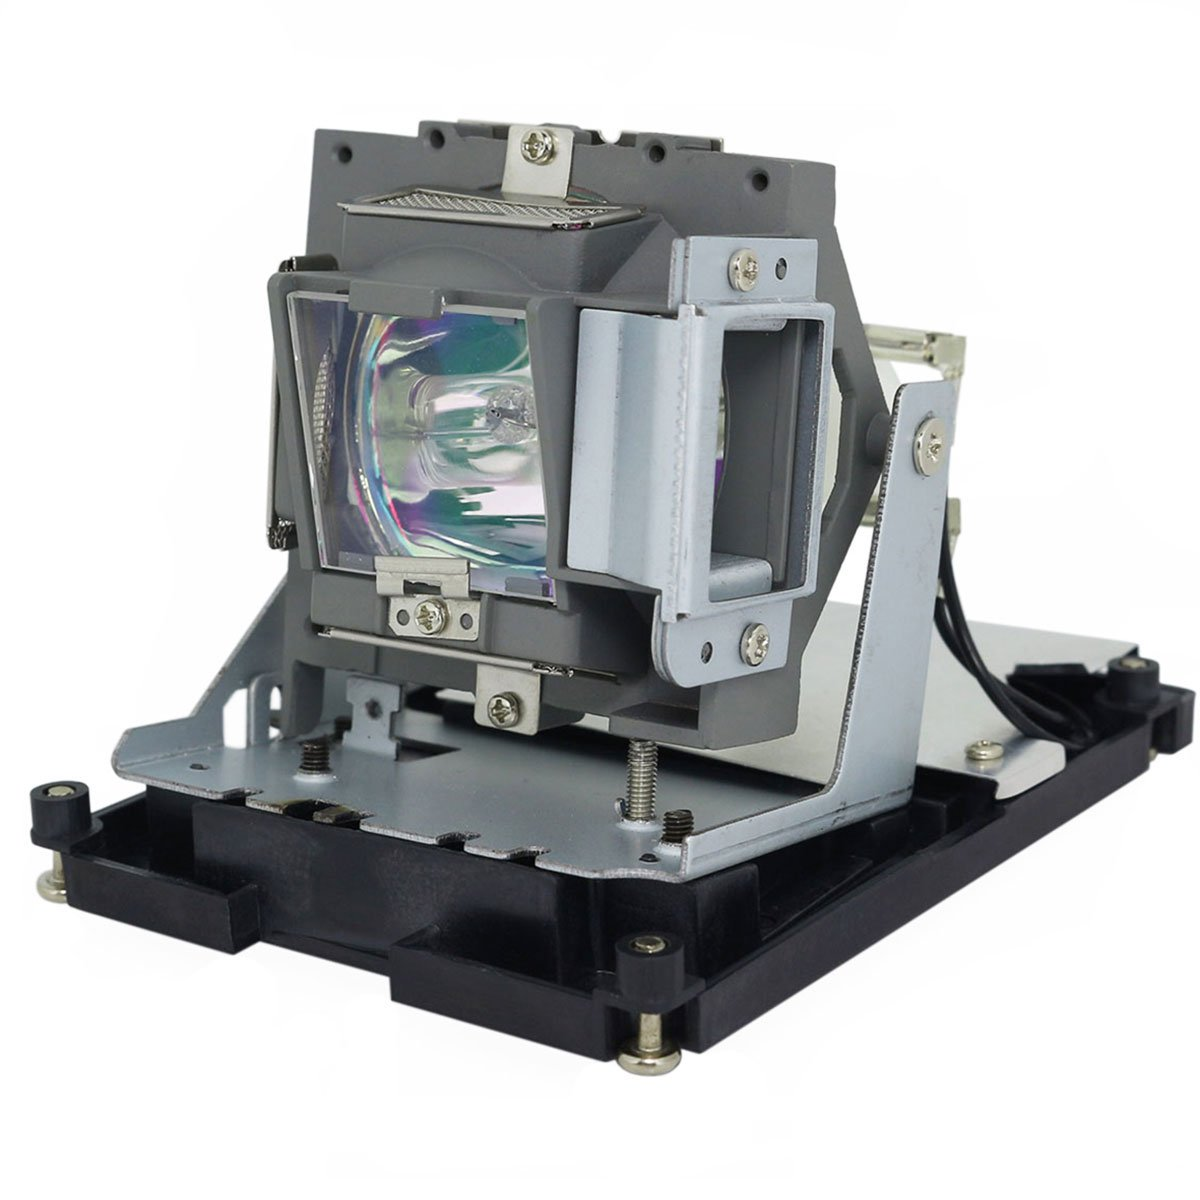 5J.J0W05.001 High Quality Projector Lamp With Housing For BENQ HP3920/W1000/W1000+/W1050 Projectors